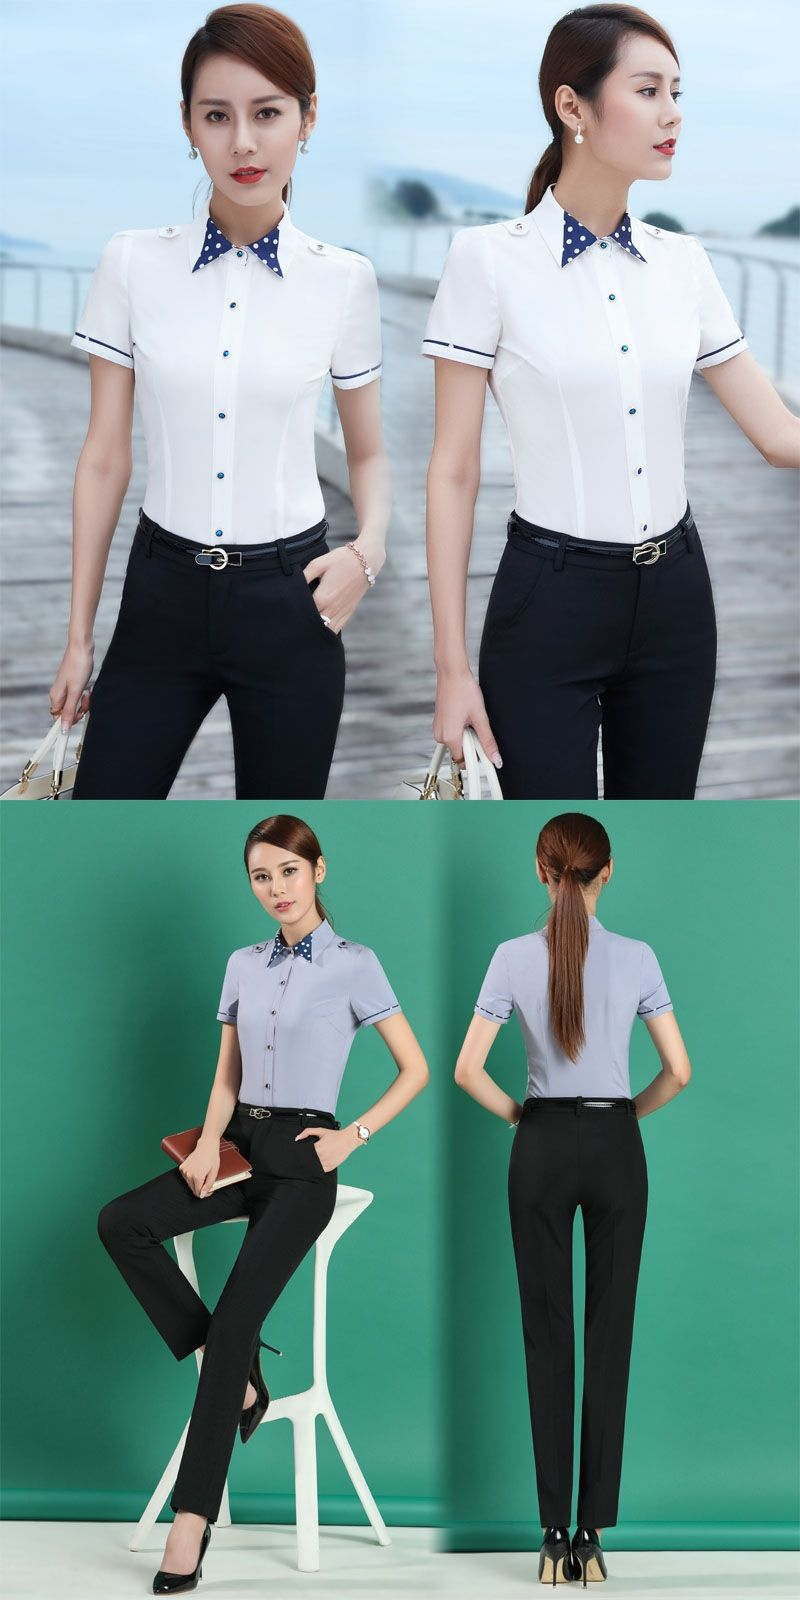 Summer Slim Fit Fashion Formal Professional Pantsuits With Tops And ...